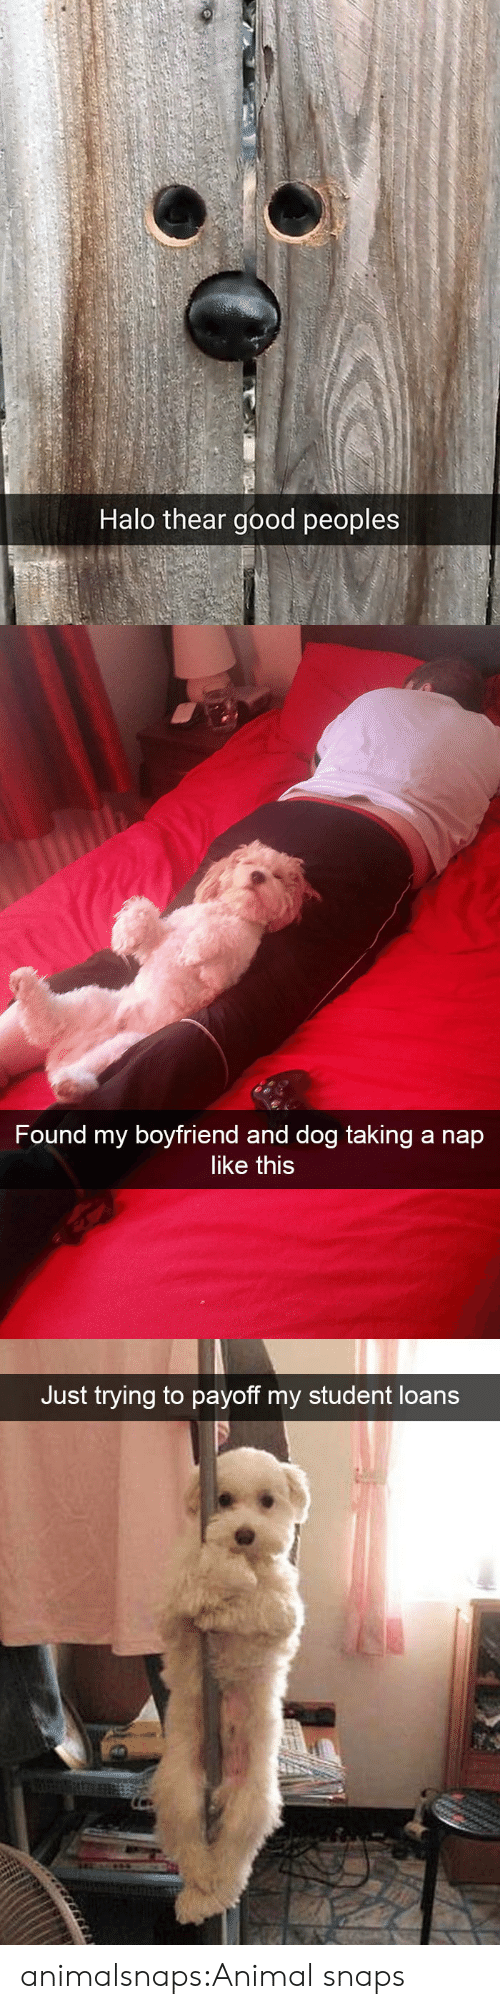 Halo, Target, and Tumblr: Halo thear good peoples   Found my boyfriend and dog taking a nap  like this   Just trying to payoff my student loans animalsnaps:Animal snaps